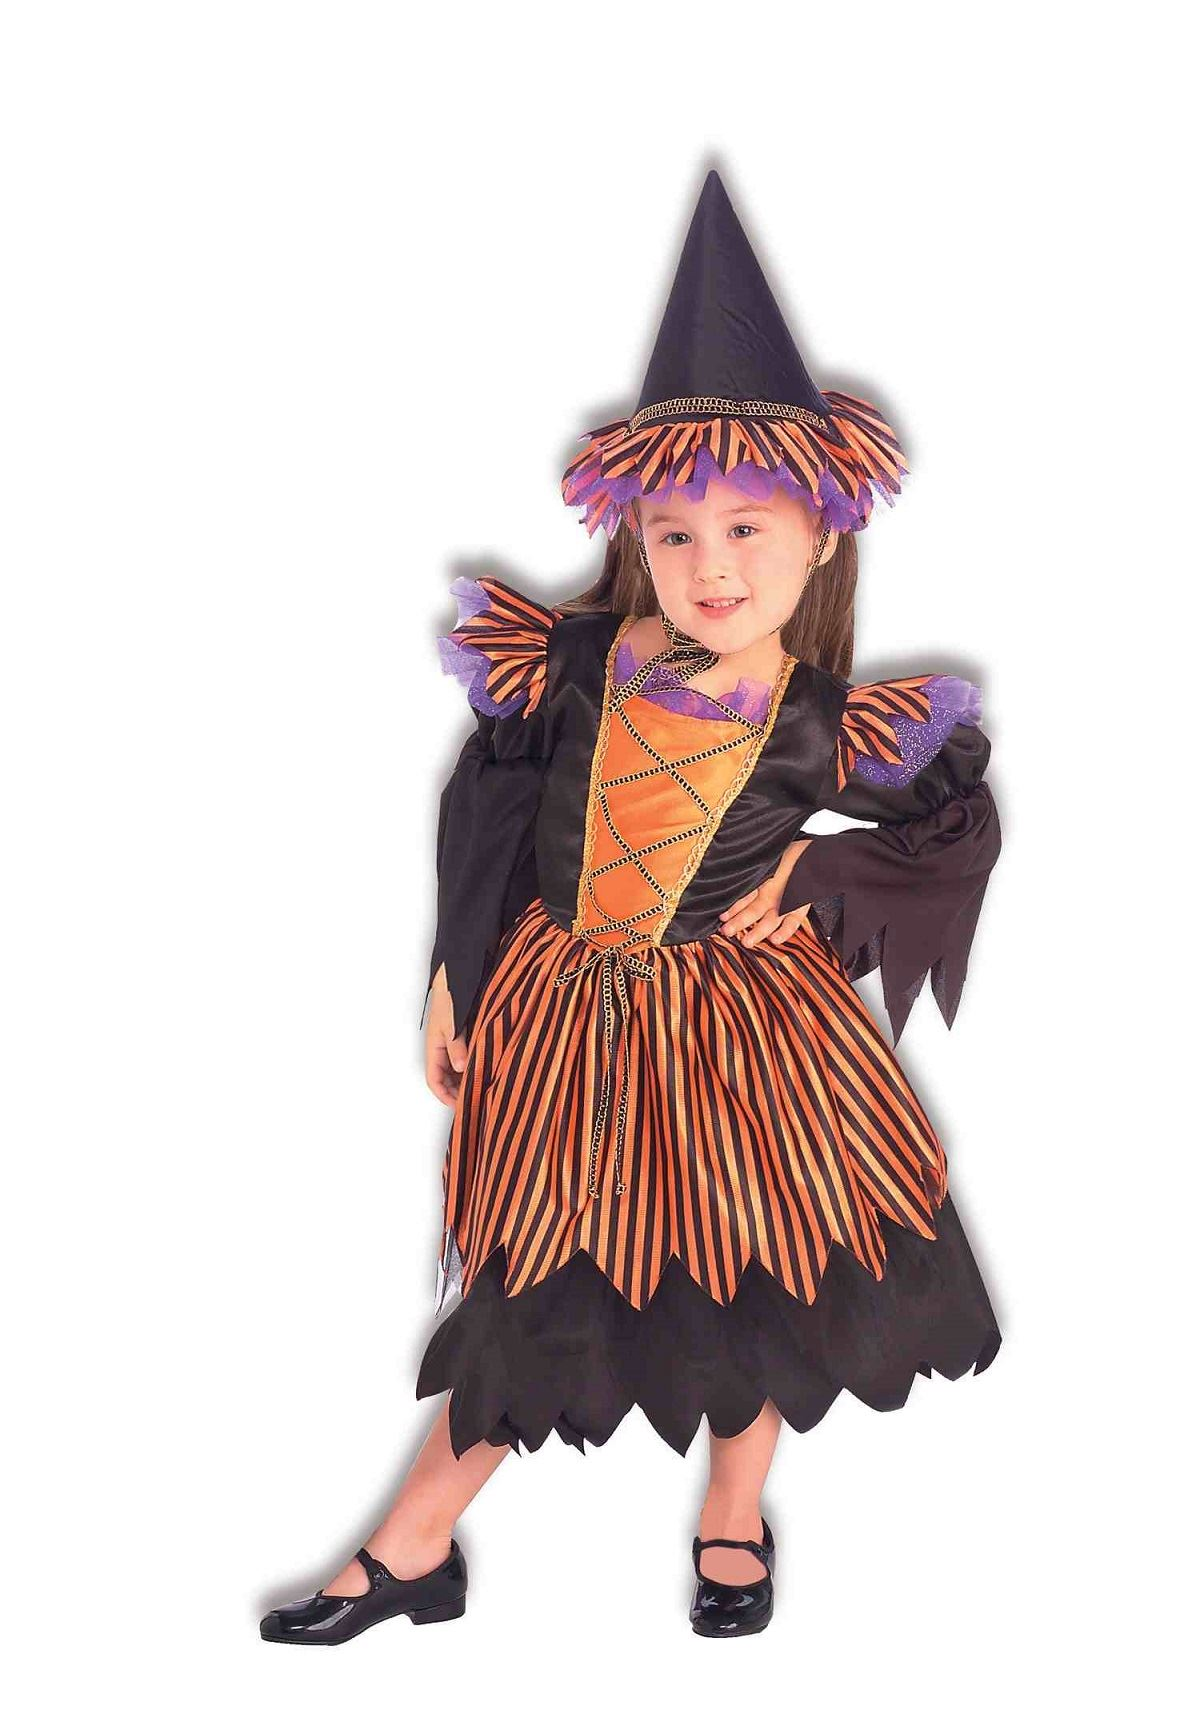 Kids Storybook Witch Girls Costume | $18.99 | The Costume Land